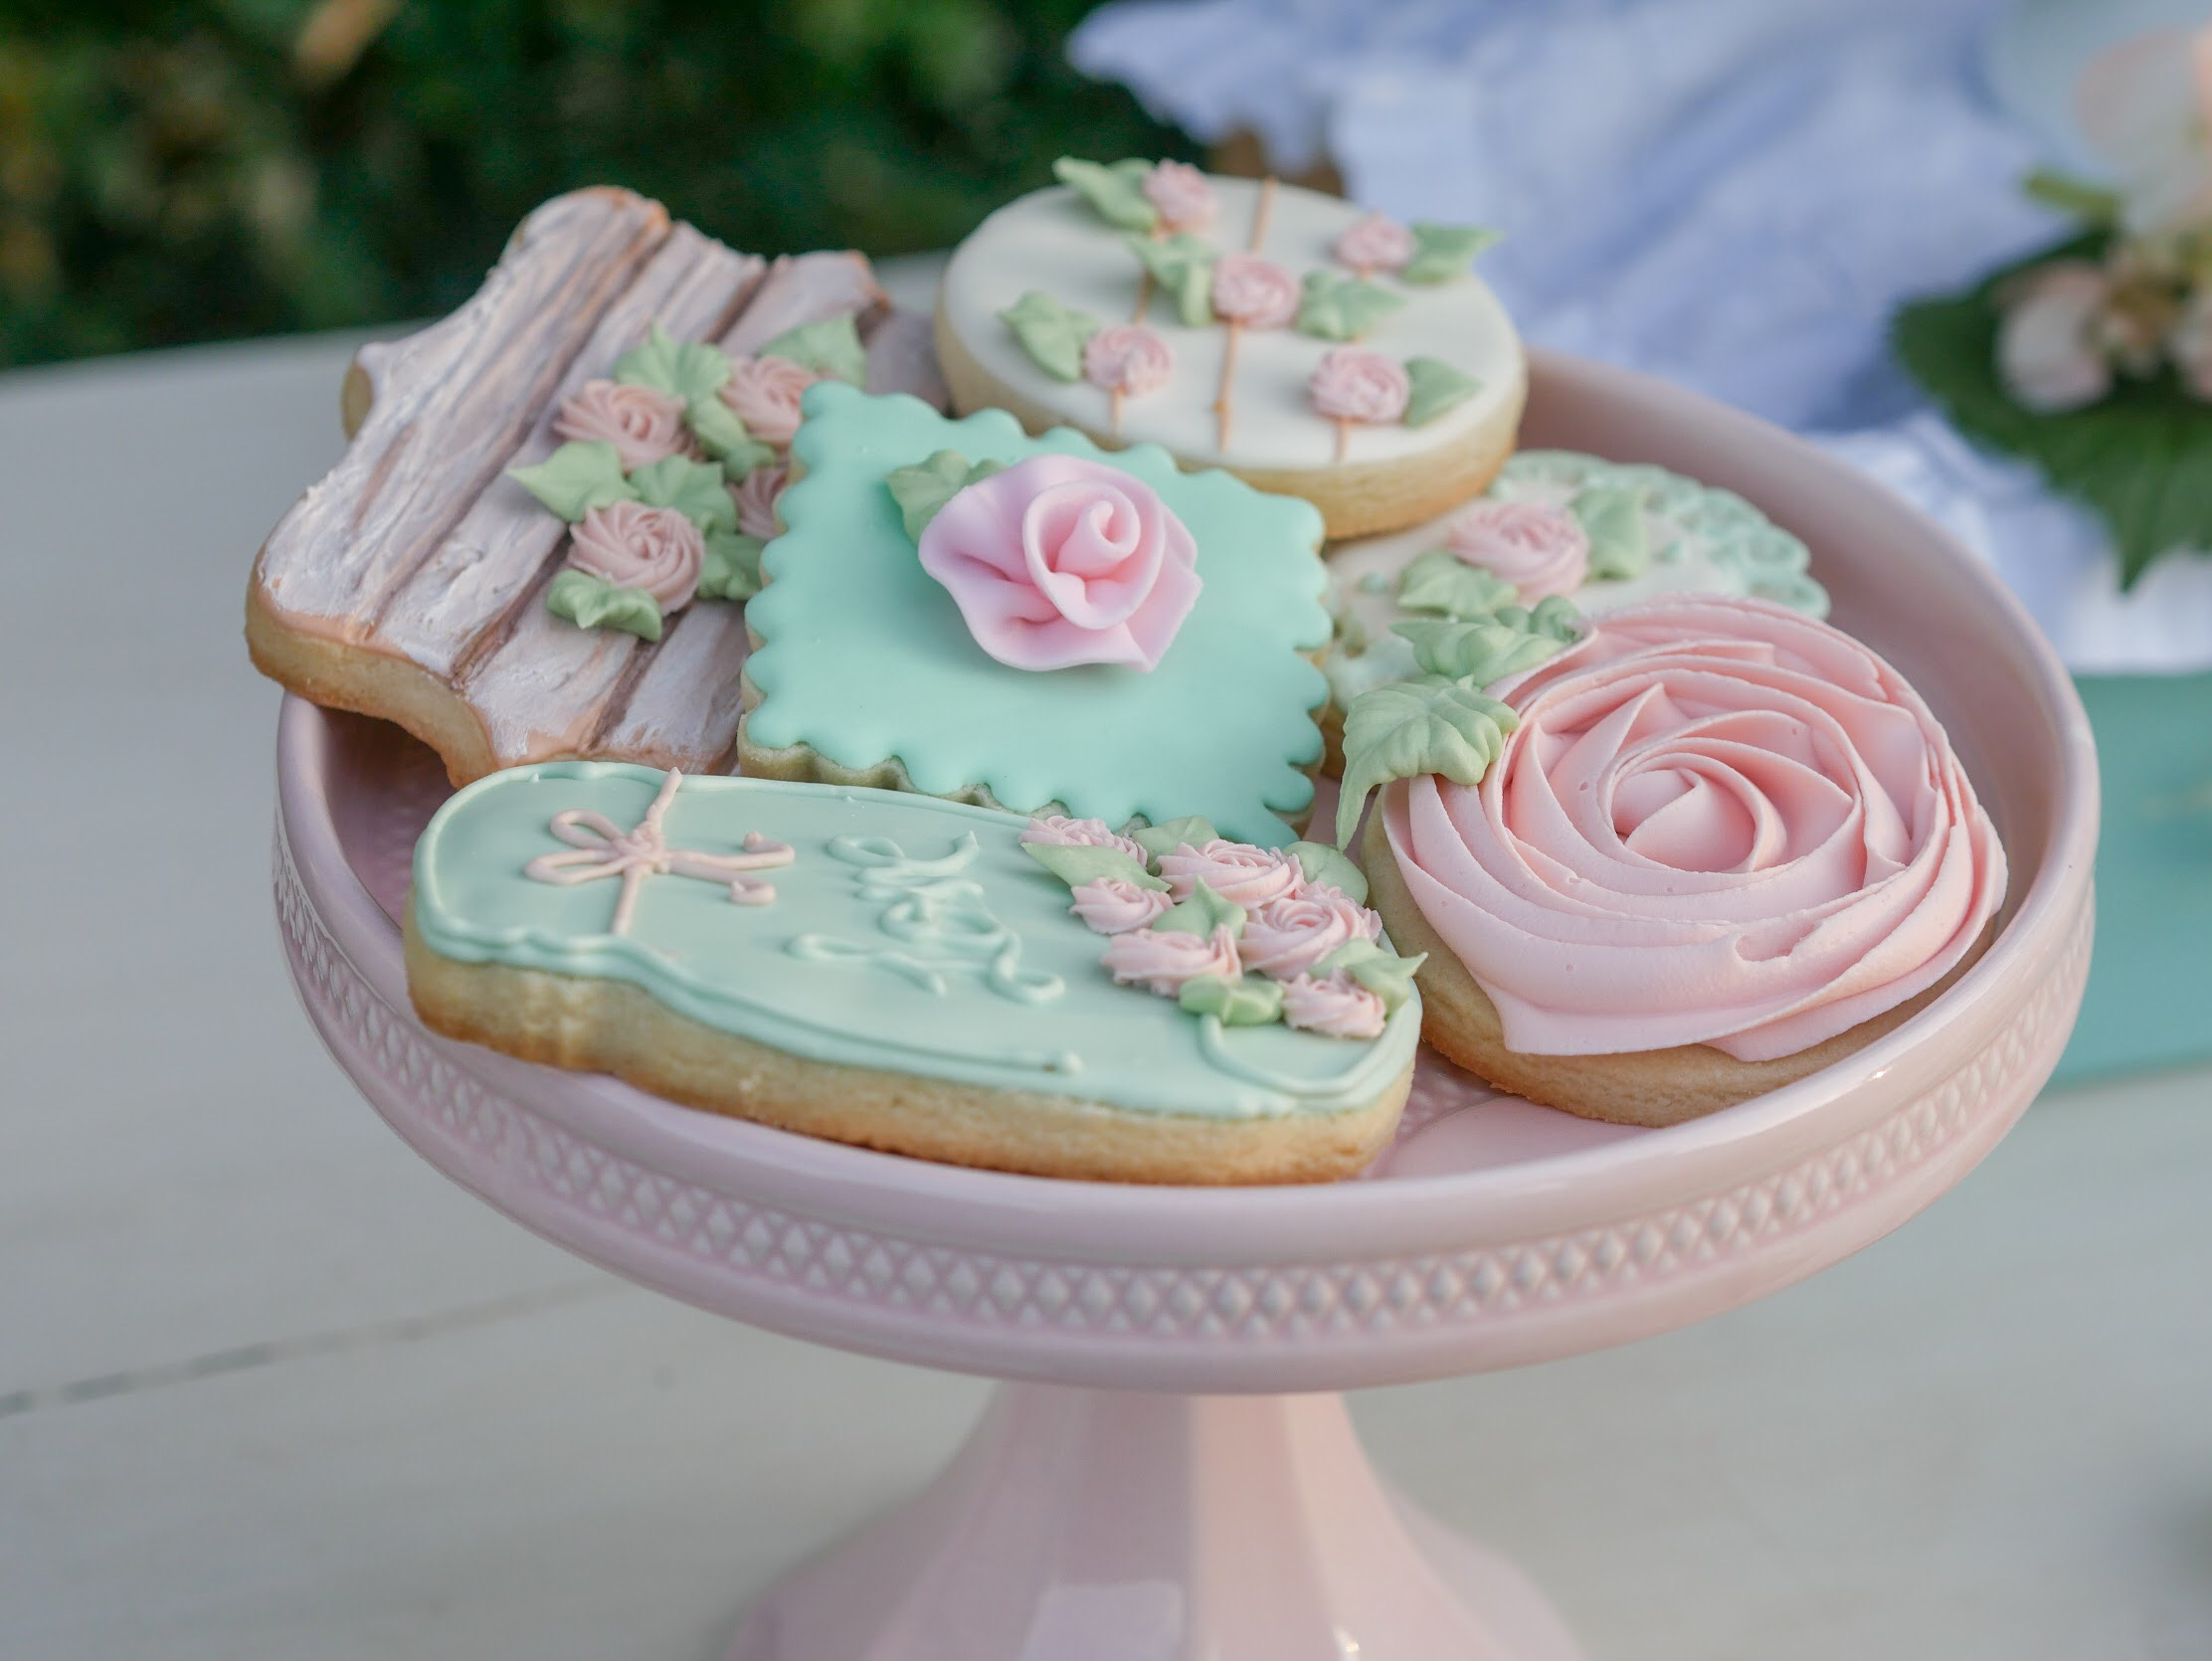 Vintage Garden Party Sugar Cookies. As seen on Mint Event Design www.minteventdesign.com